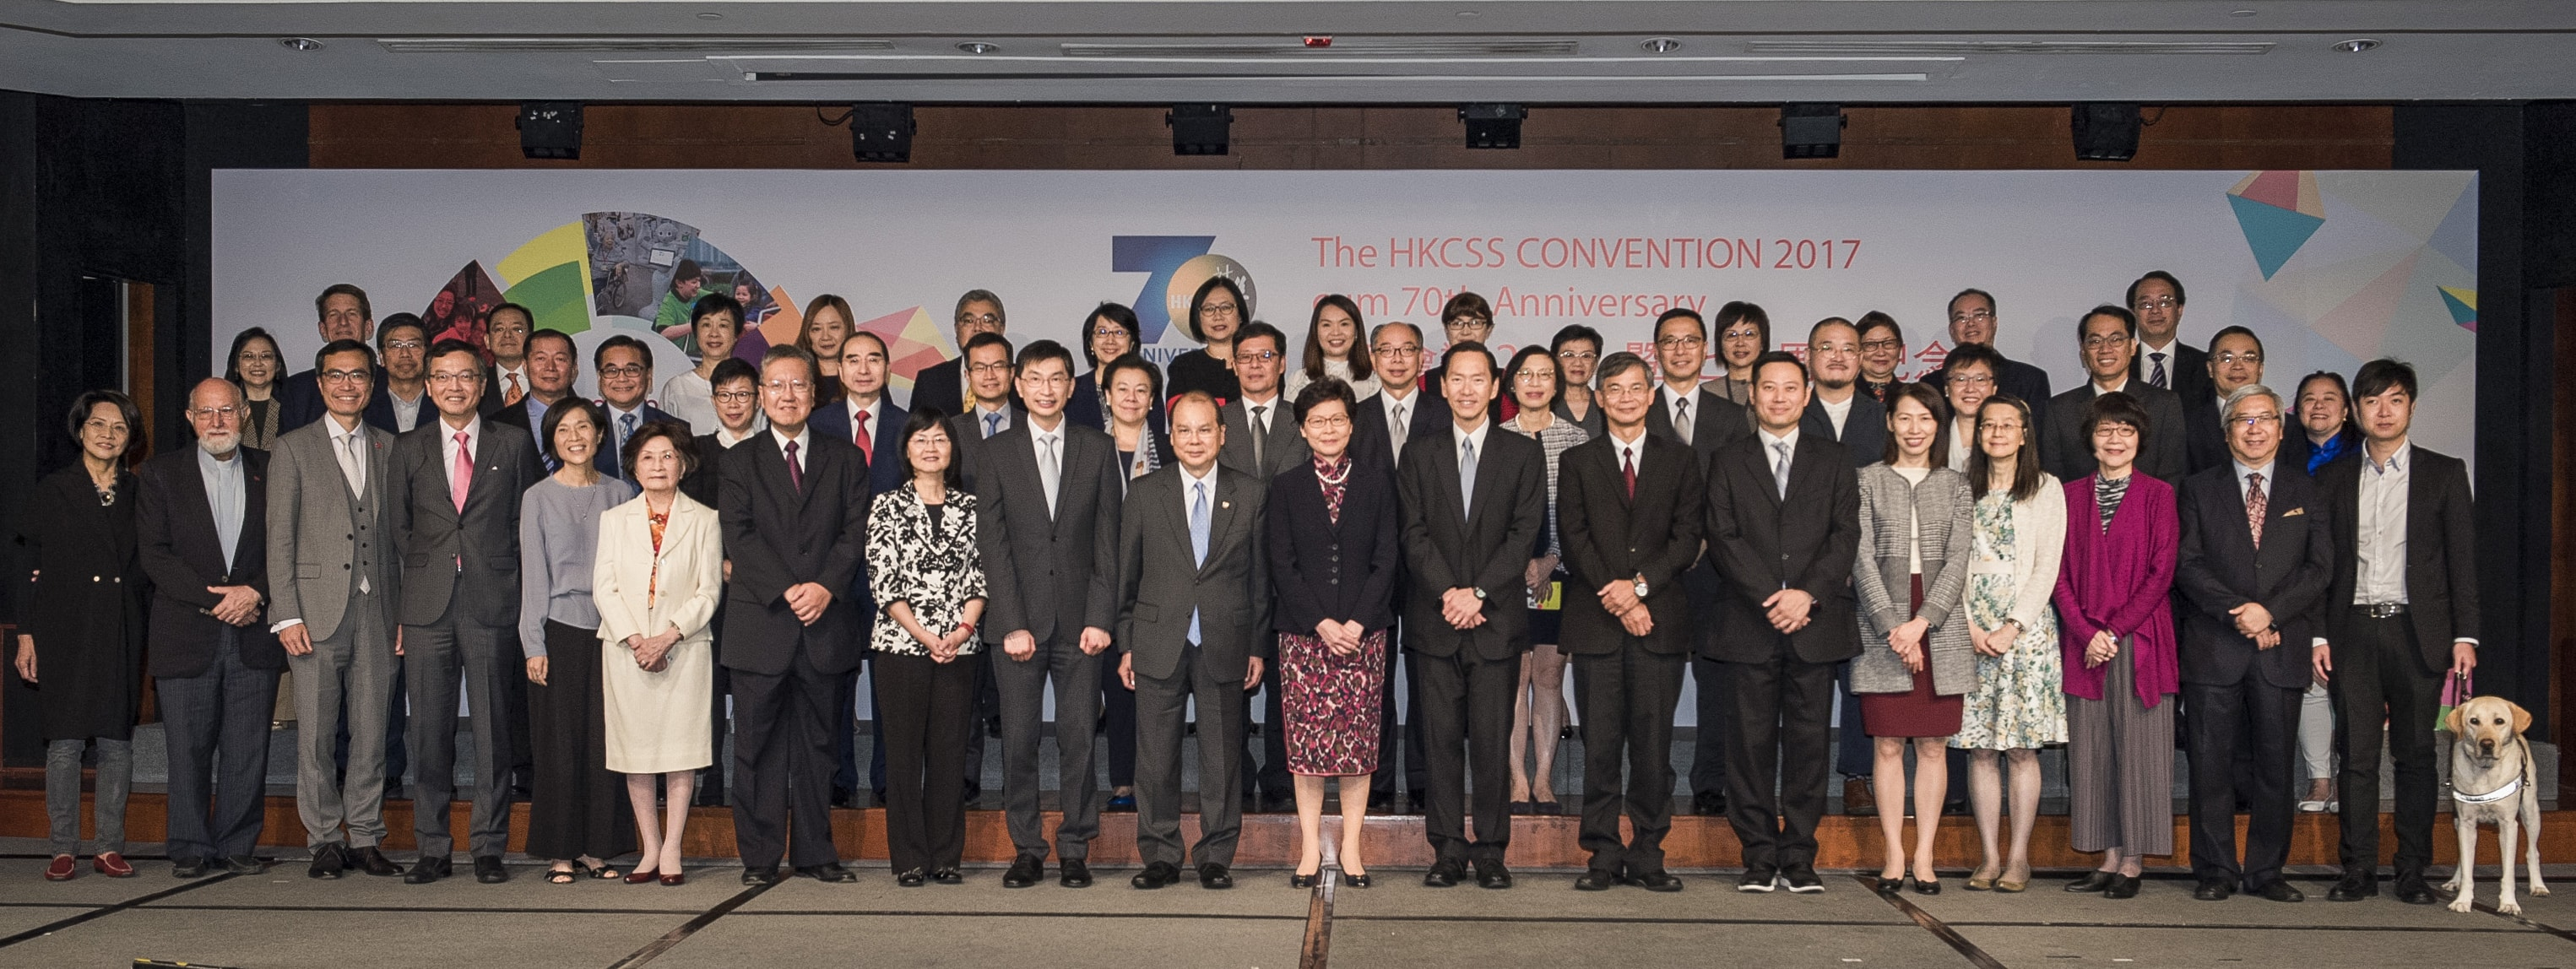 group photo of plenary session